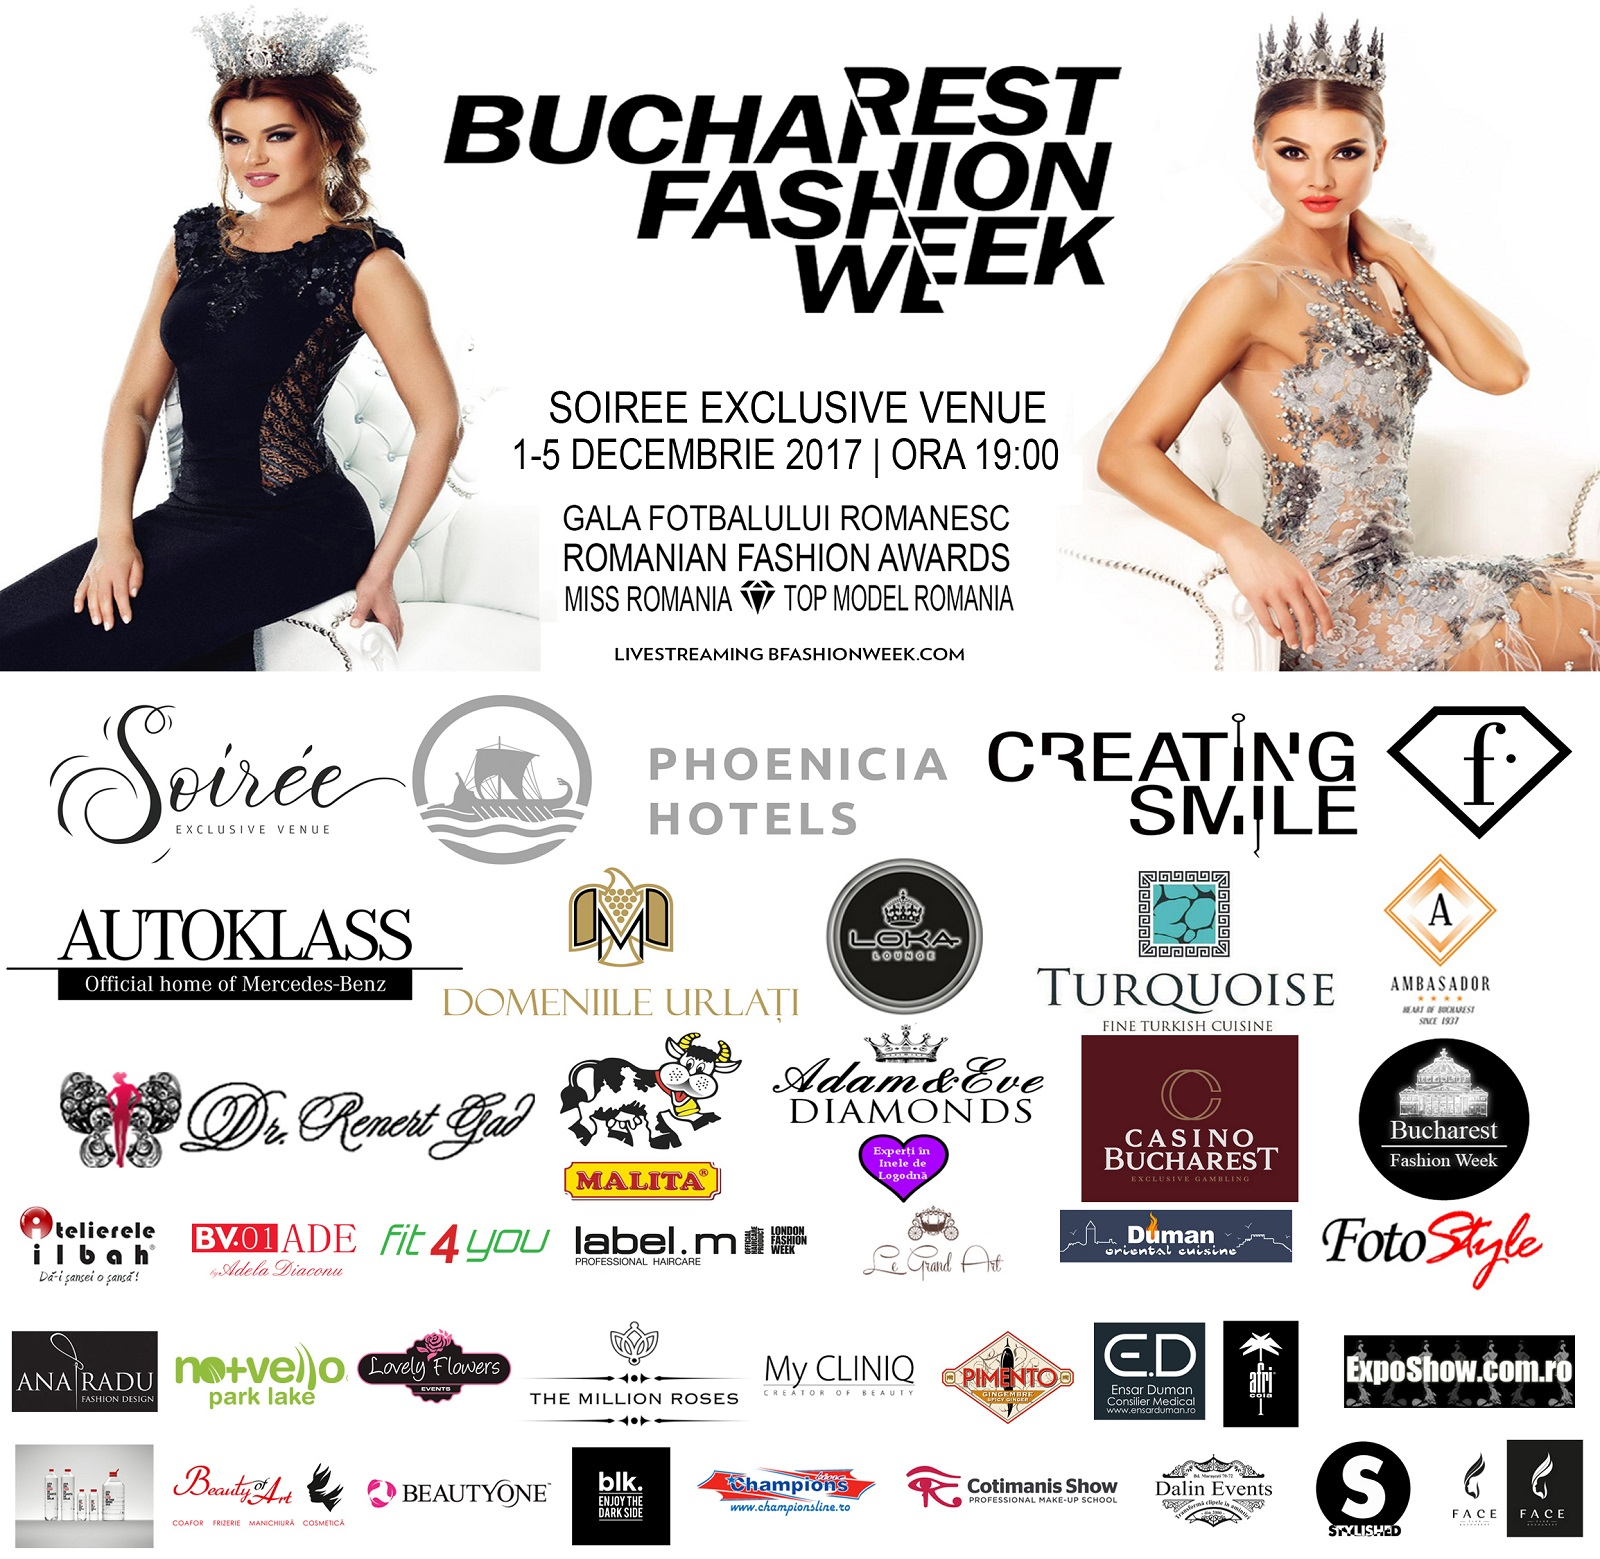 bucharest fashion week 1